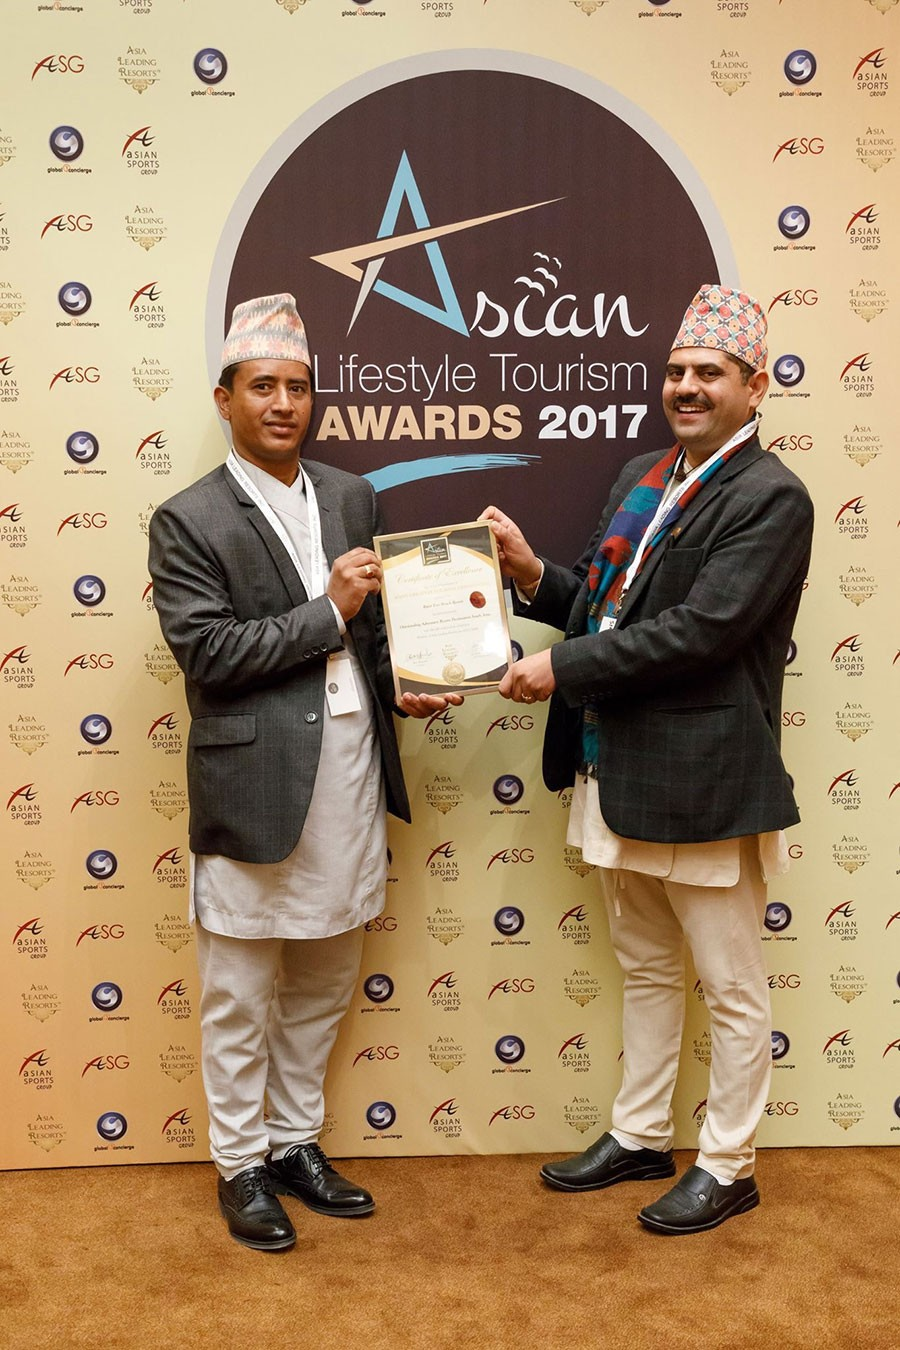 Asian Lifestyle Tourism Awards